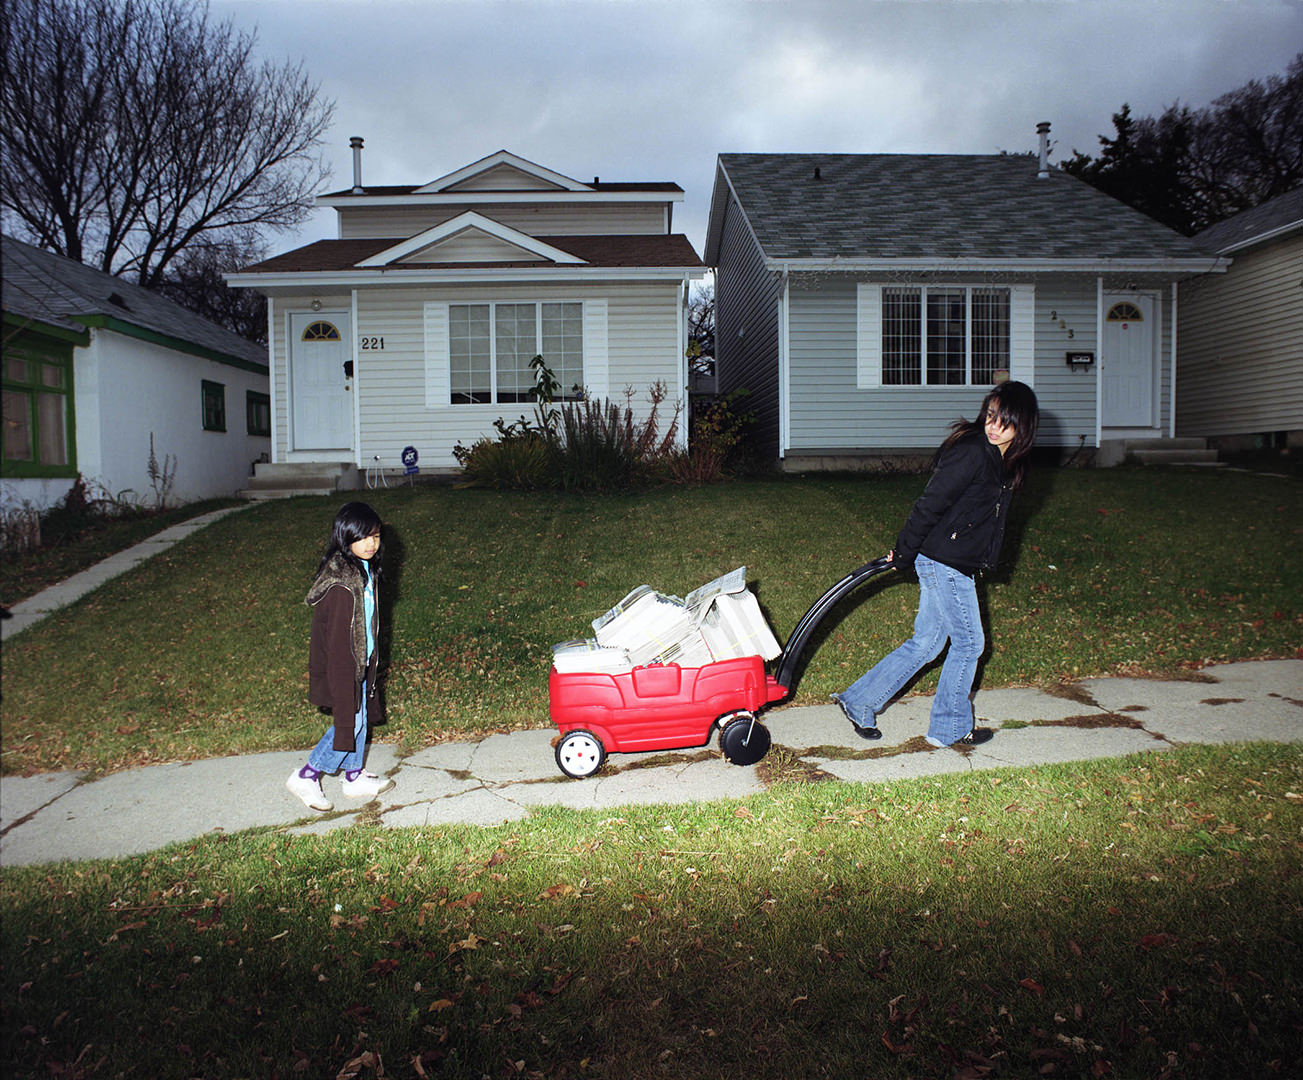 Paper Route (2009) Julie Oh (1984 - ) Colour photograph  Collection: Canada Council Art Bank